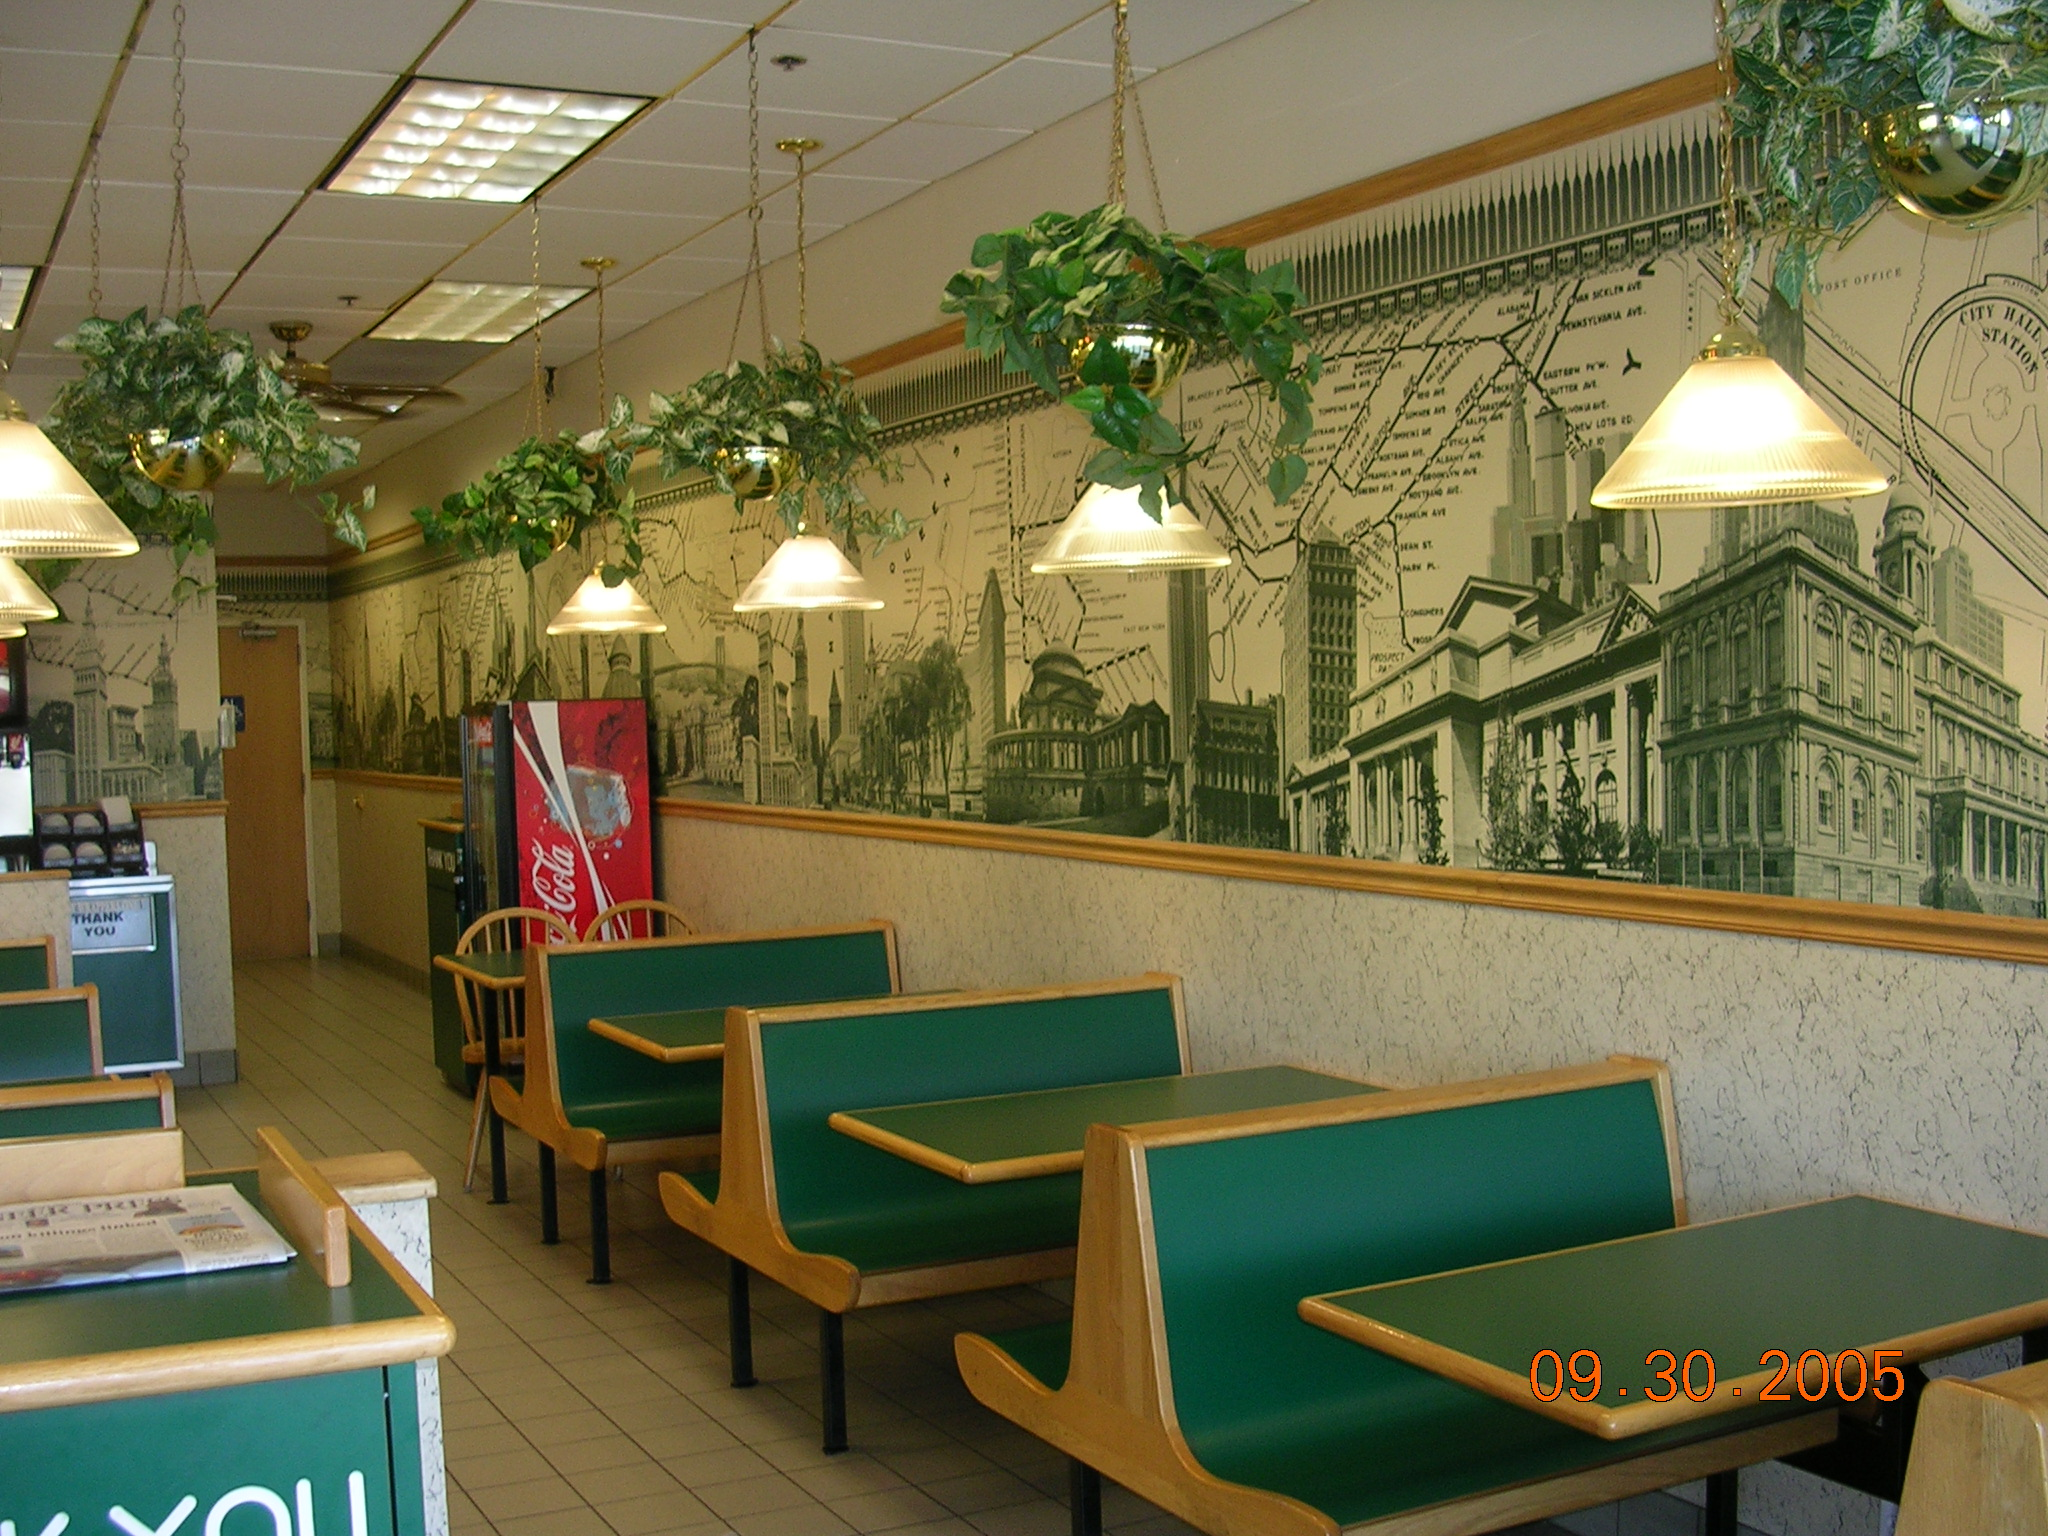 Car Wallpaper Border Download Subway Restaurant Wallpaper Gallery